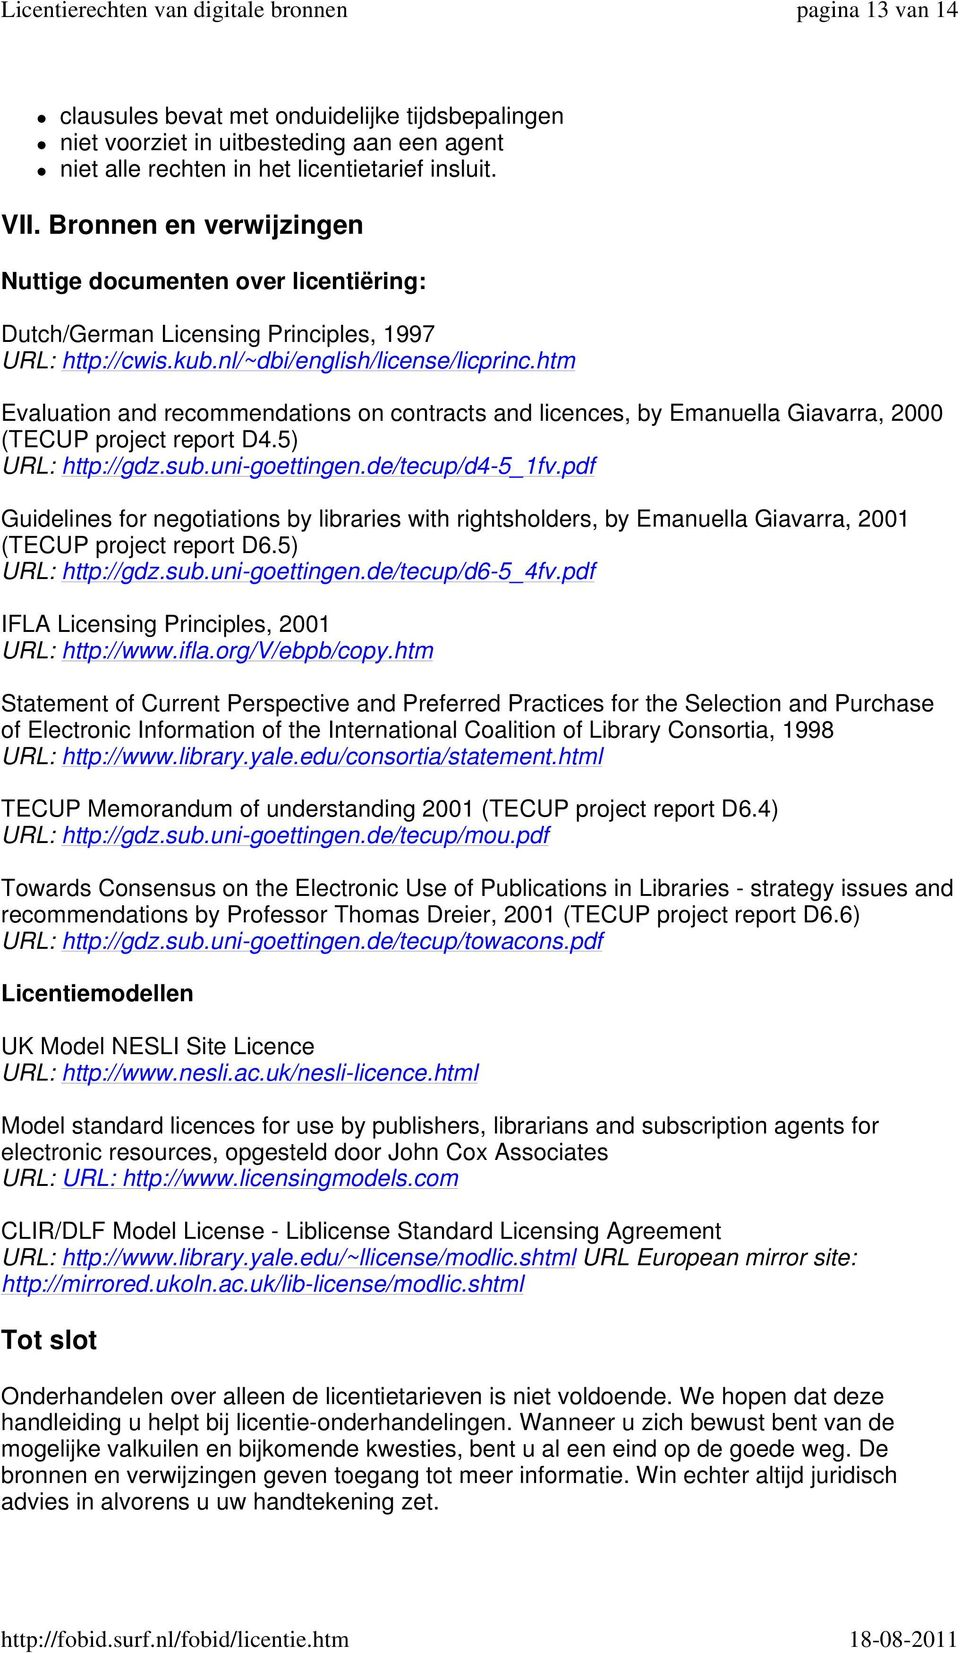 htm Evaluation and recommendations on contracts and licences, by Emanuella Giavarra, 2000 (TECUP project report D4.5) URL: http://gdz.sub.uni-goettingen.de/tecup/d4-5_1fv.